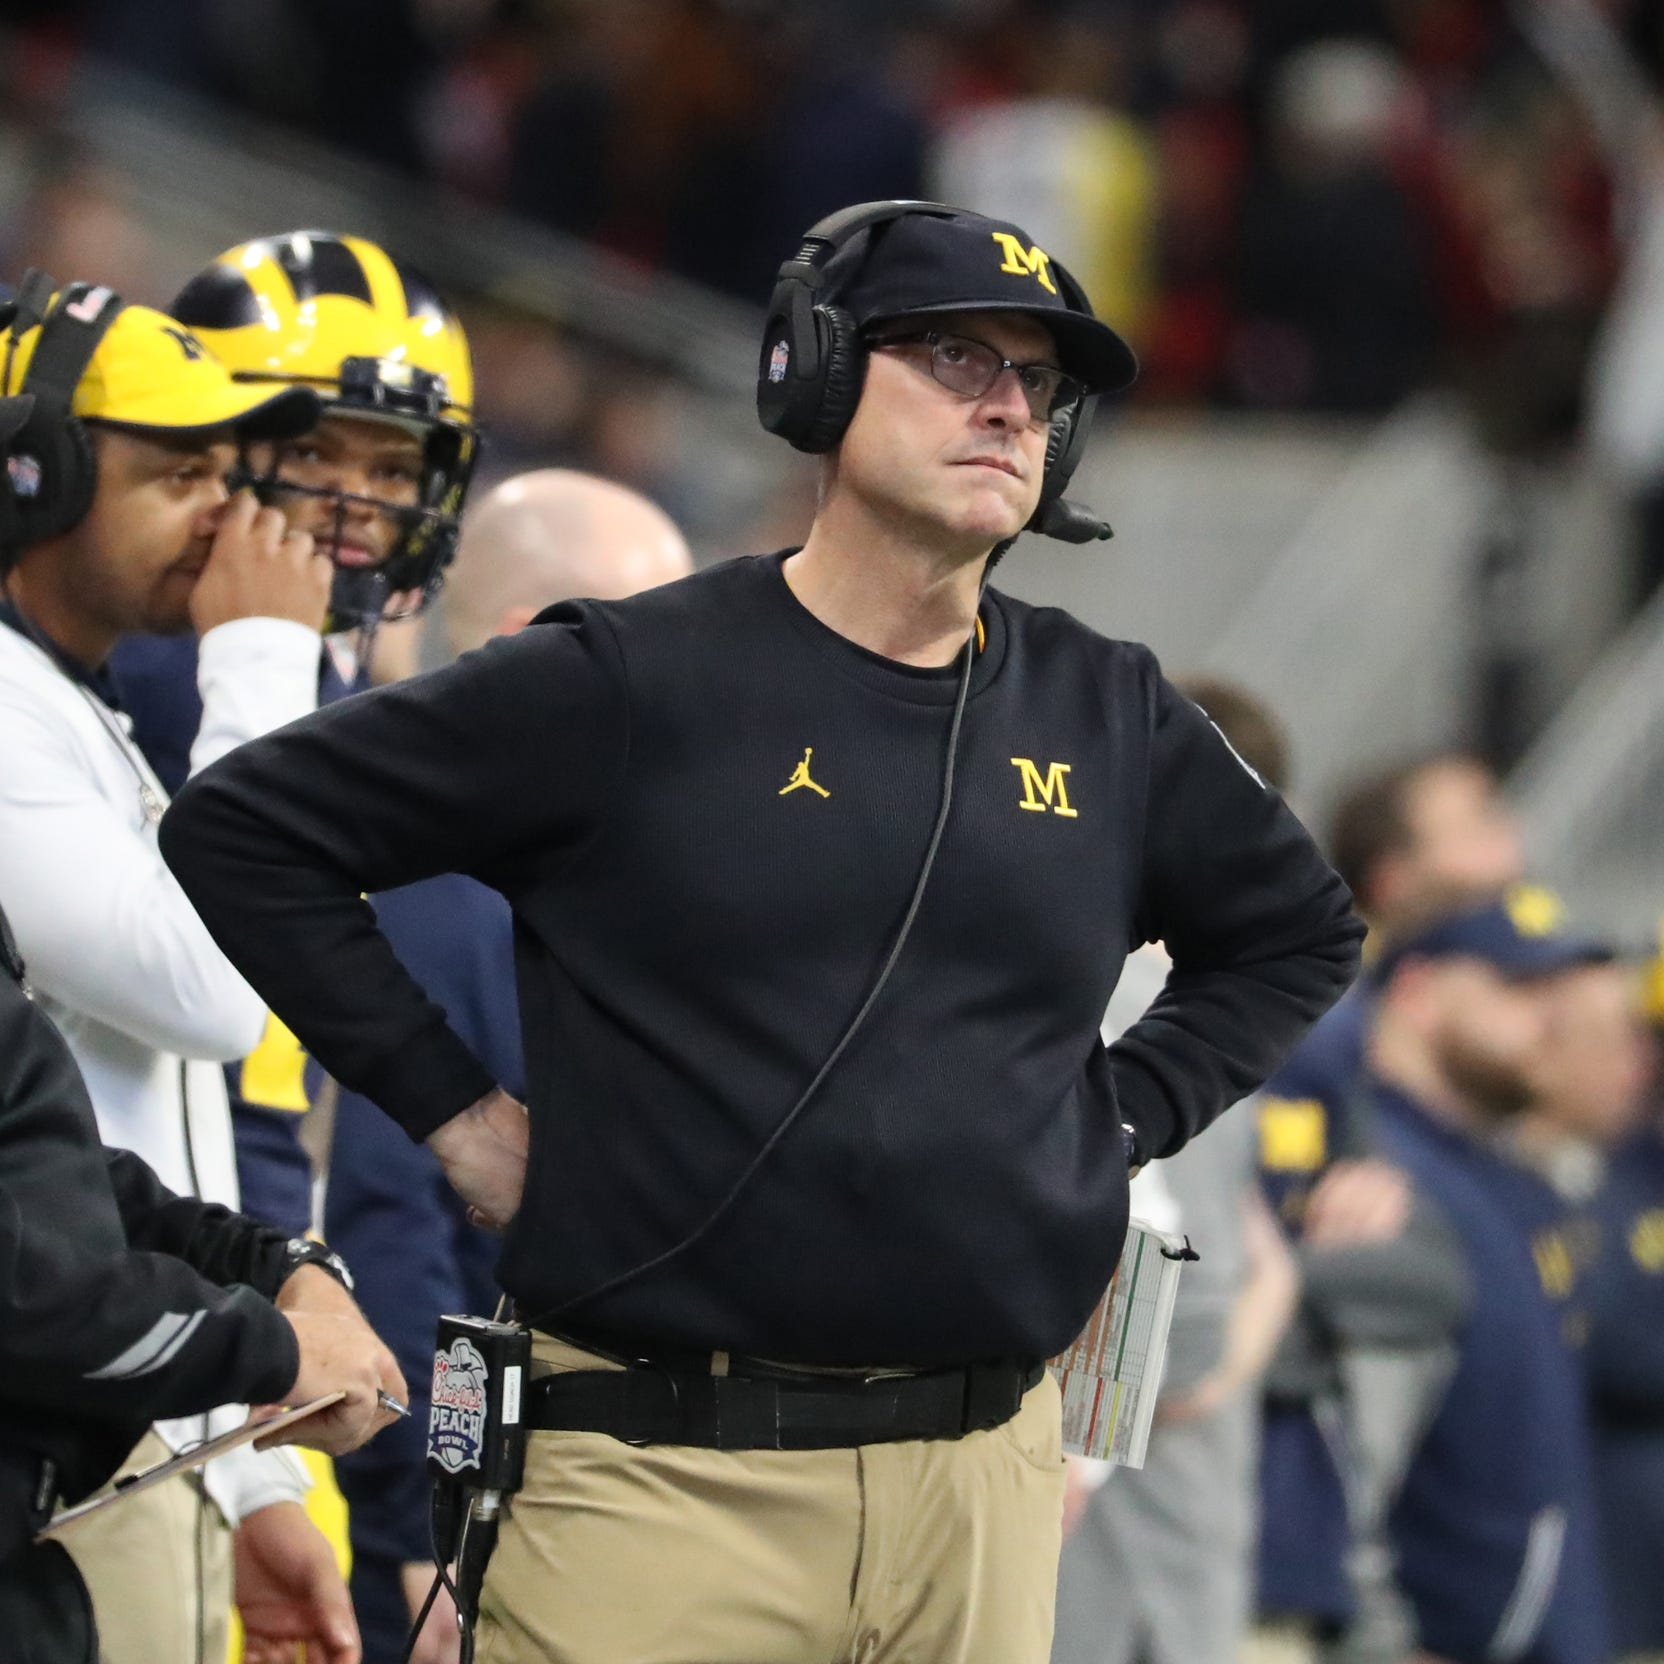 Michigan football's offense installs 'fun'; will fans enjoy it, too?